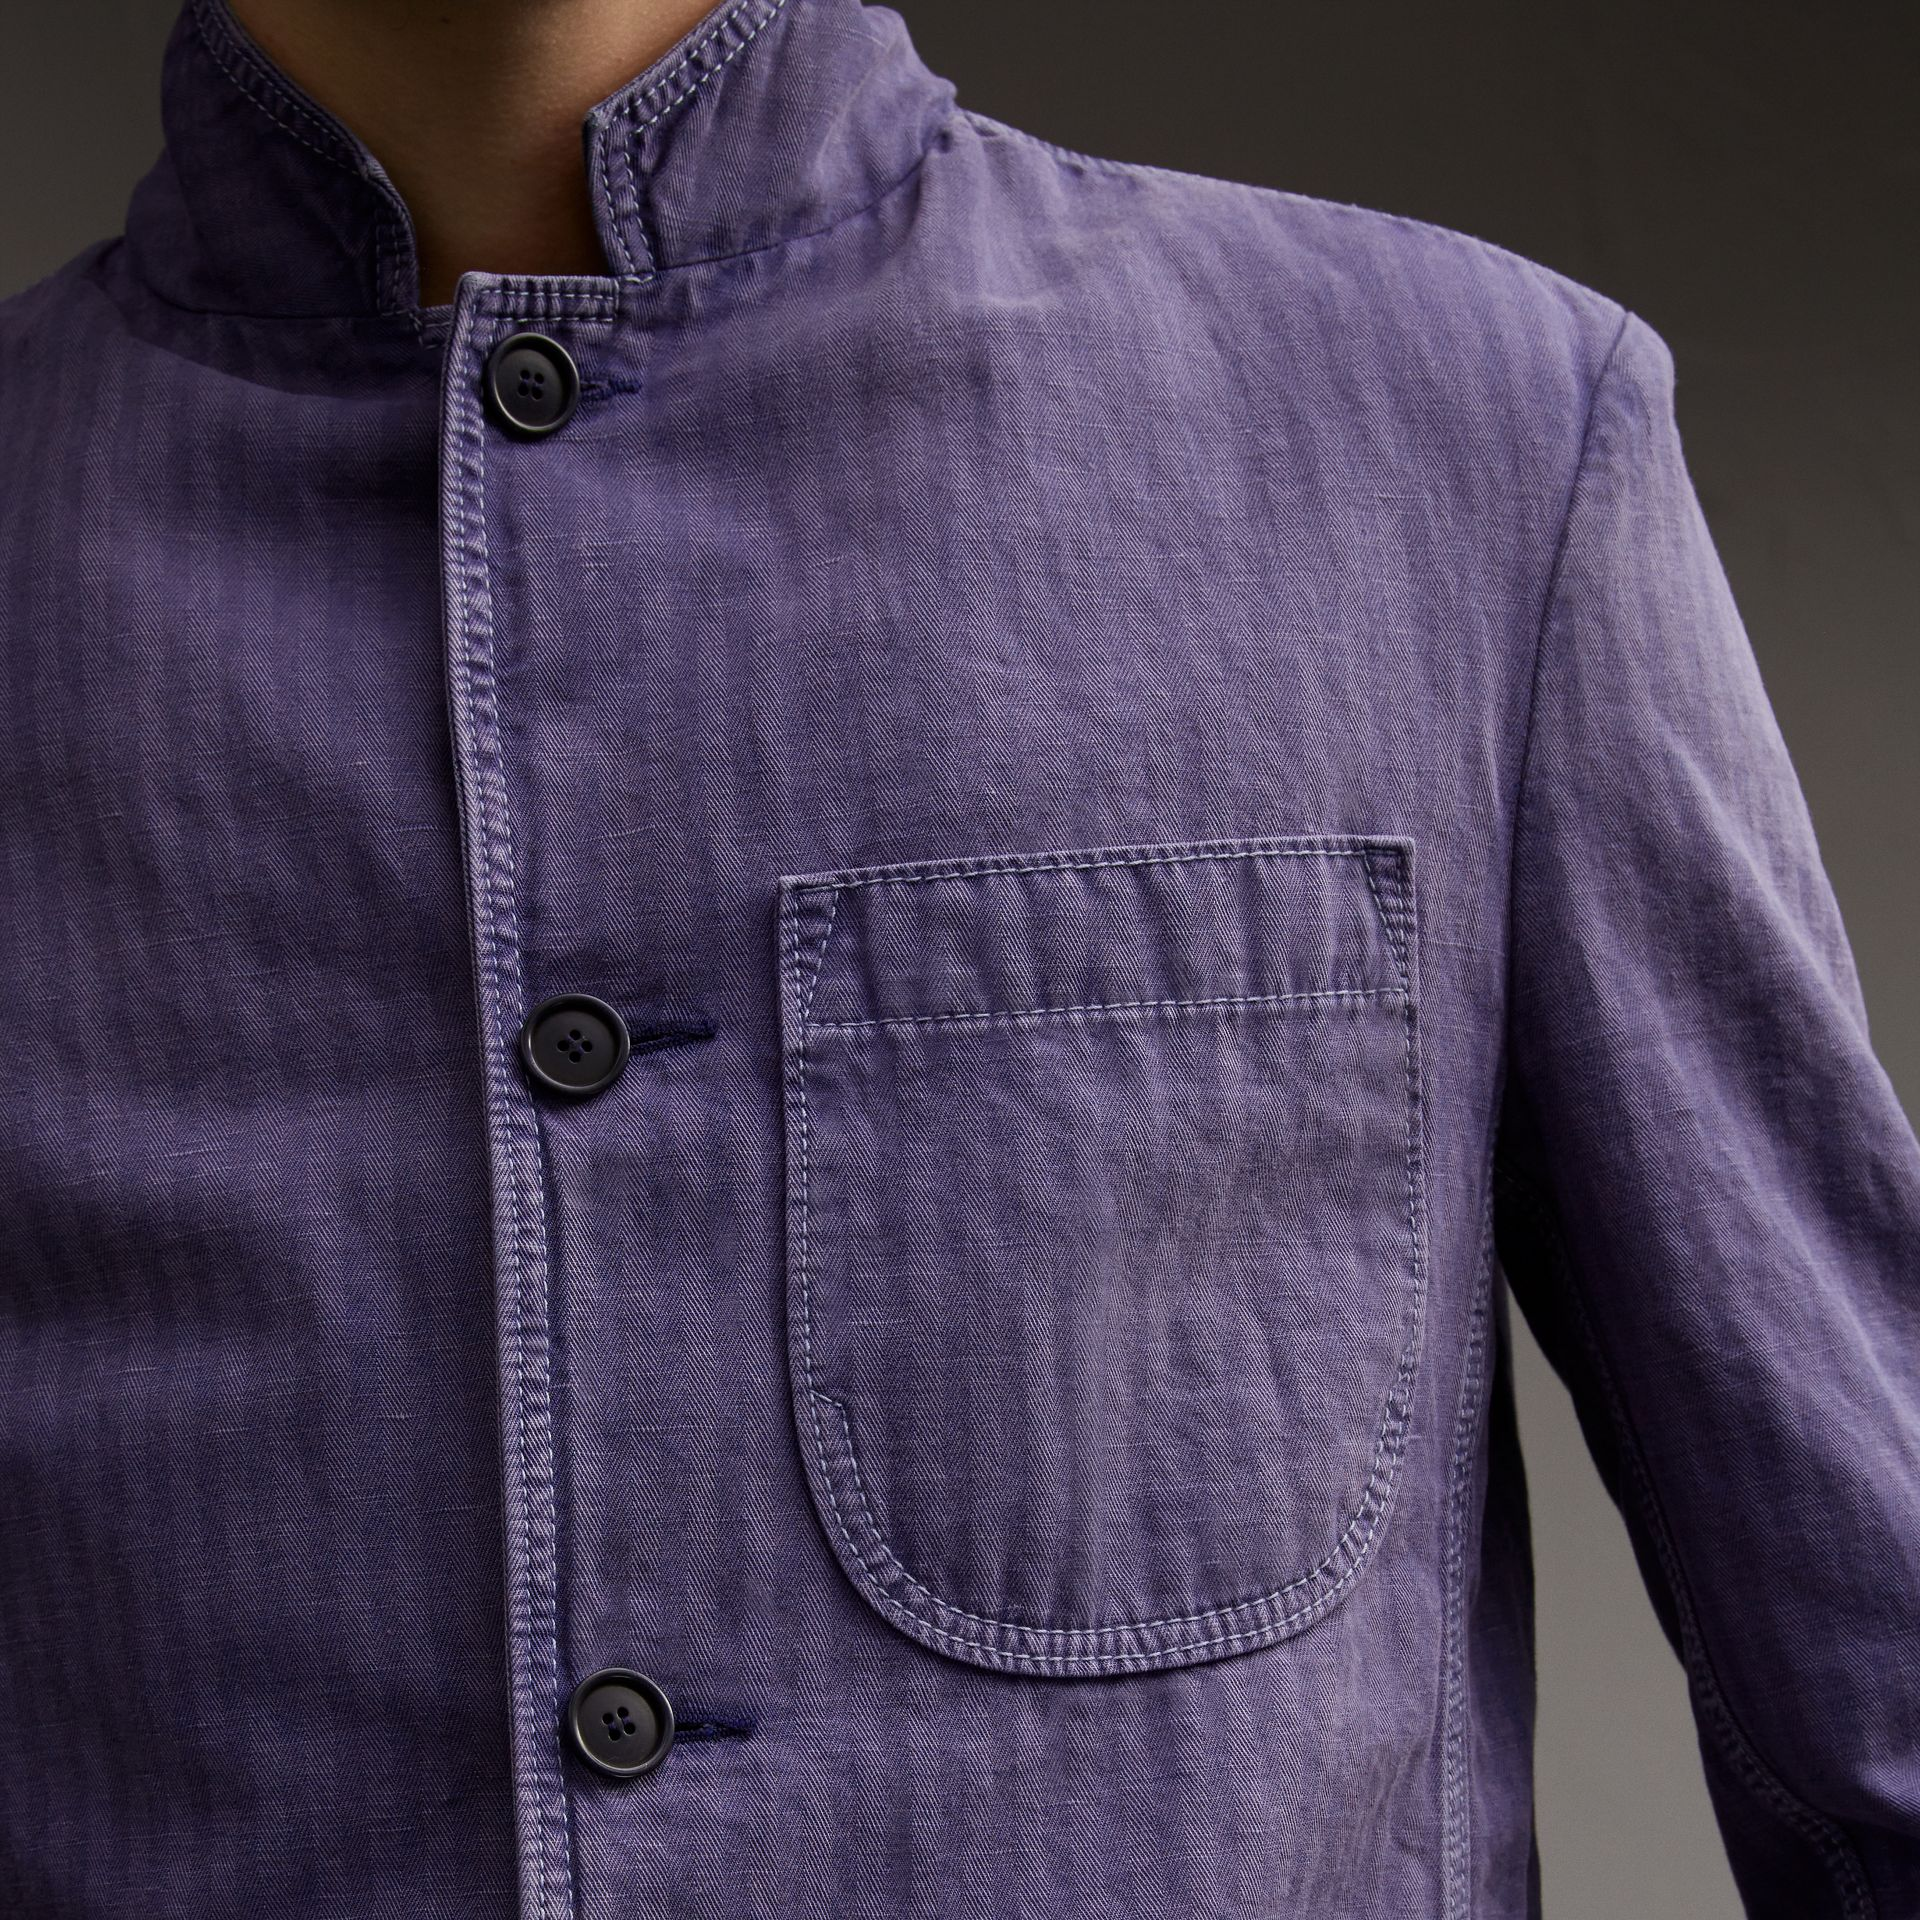 Herringbone Cotton Linen Workwear Jacket in Indigo - Men | Burberry - gallery image 5